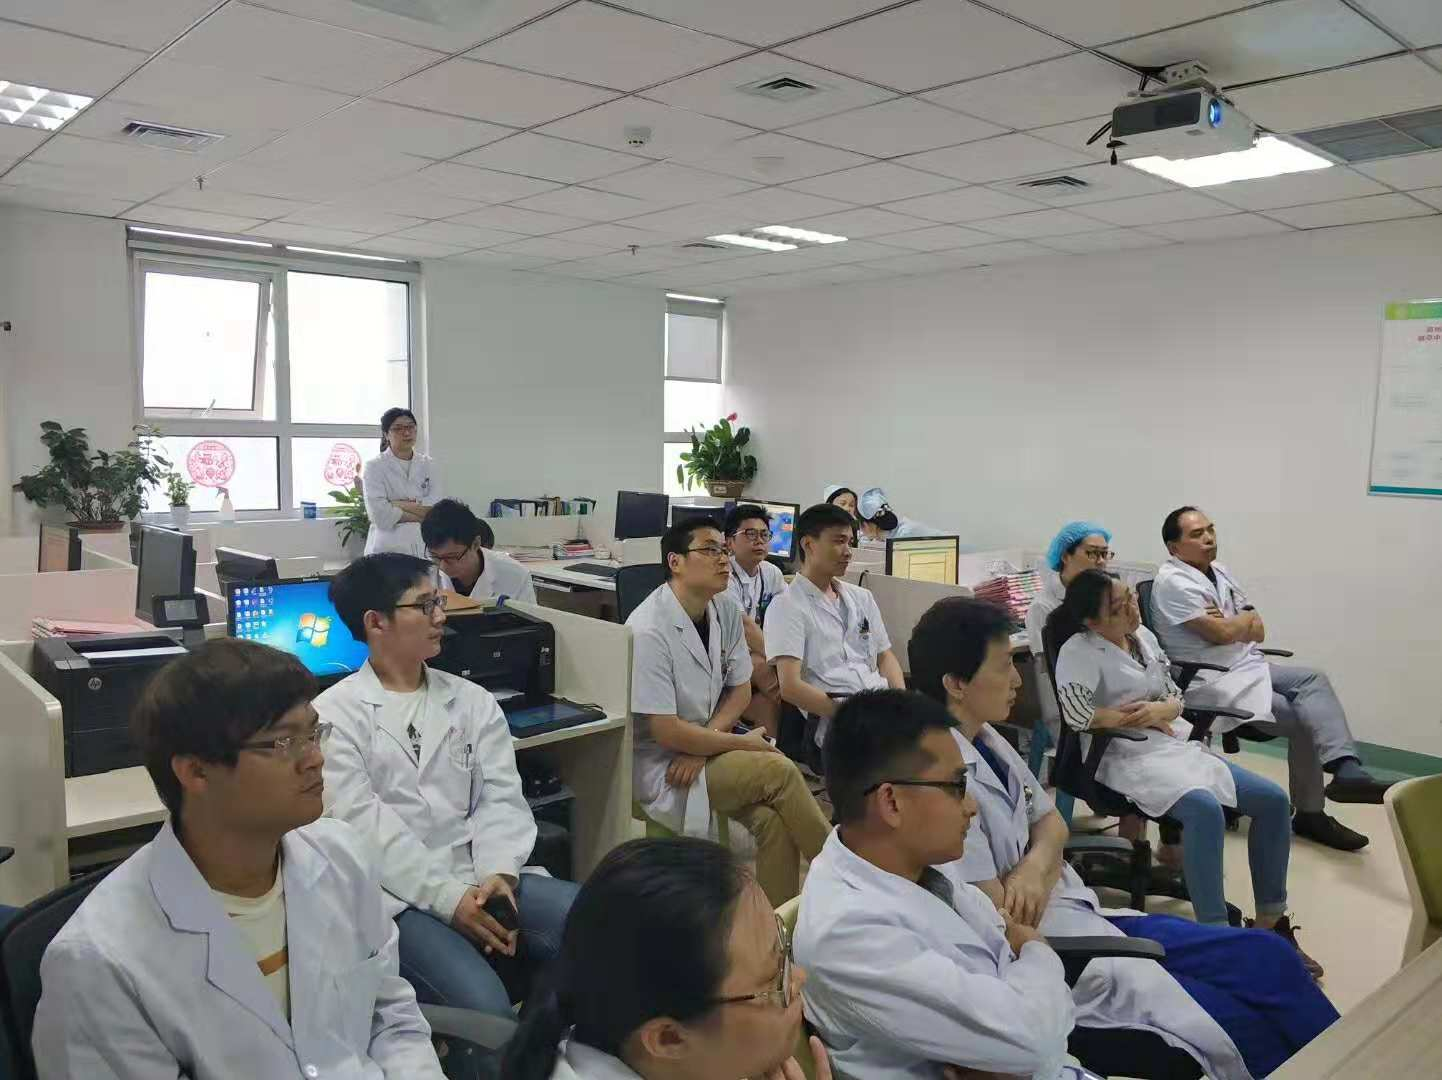 On the morning of June 13th, henan orthopedics hospital successfully held Dr